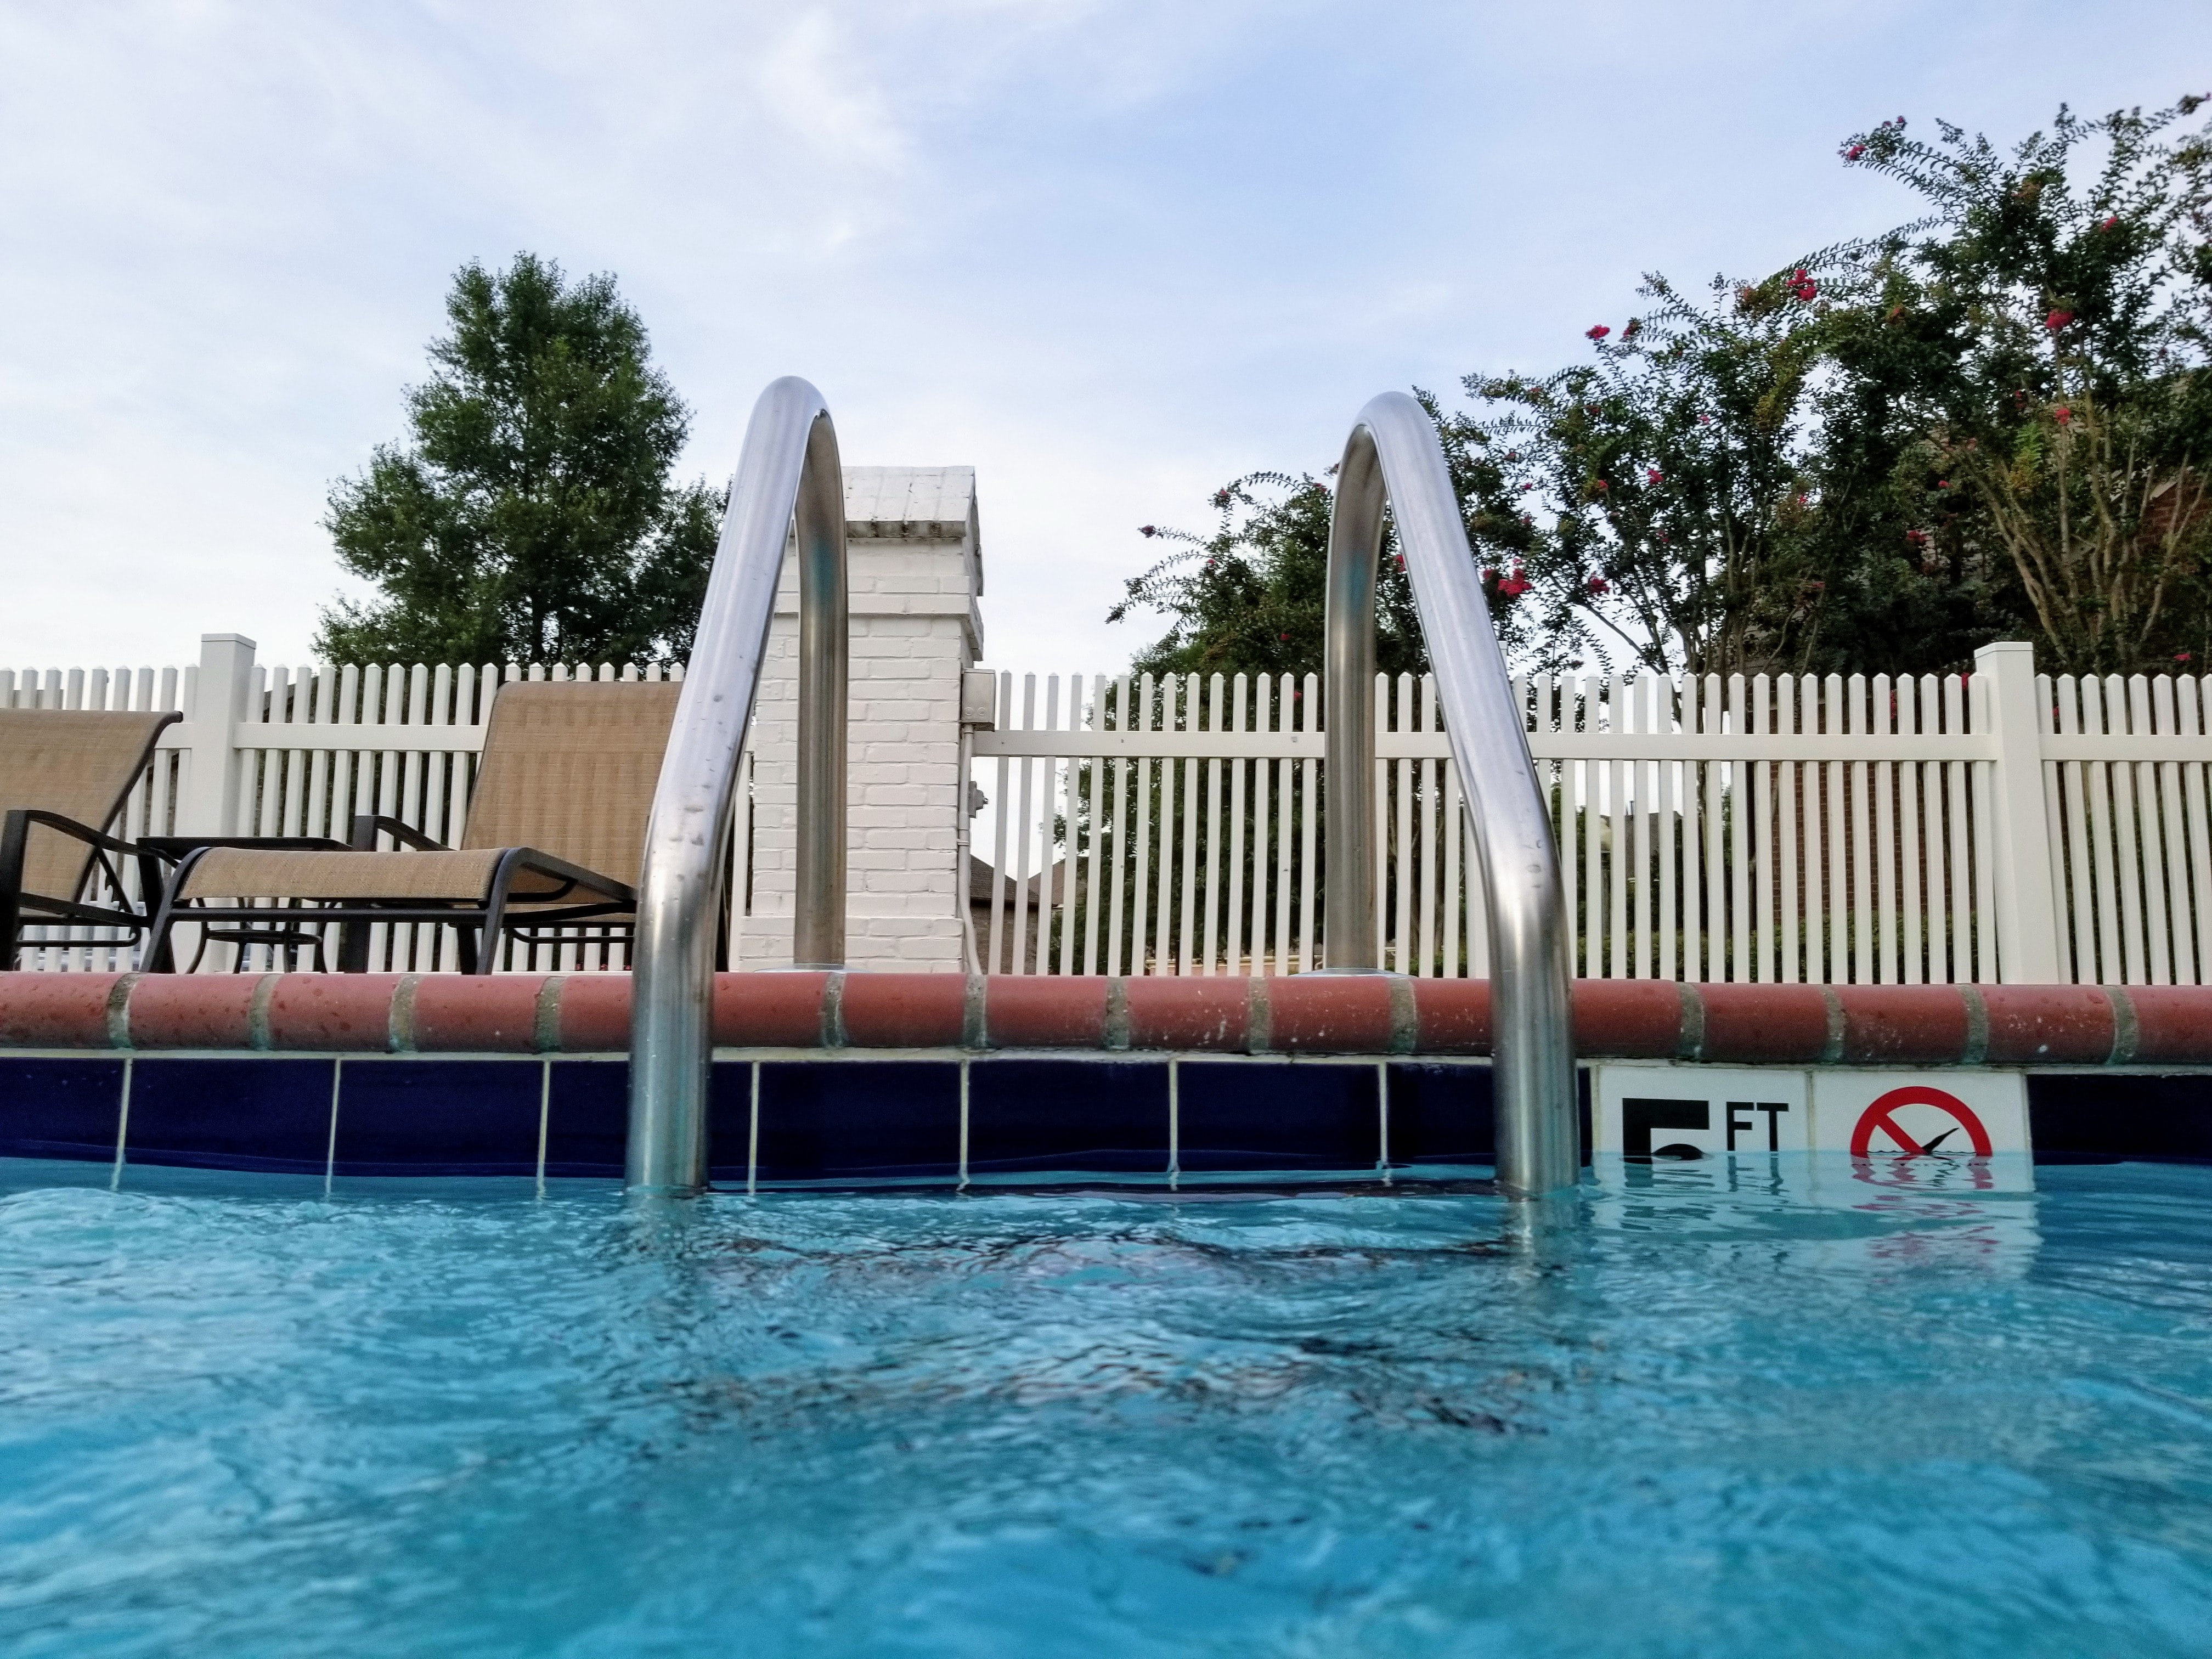 What Your NC & SC Community Should Consider Before Opening Pools Amid COVID-19 Concerns